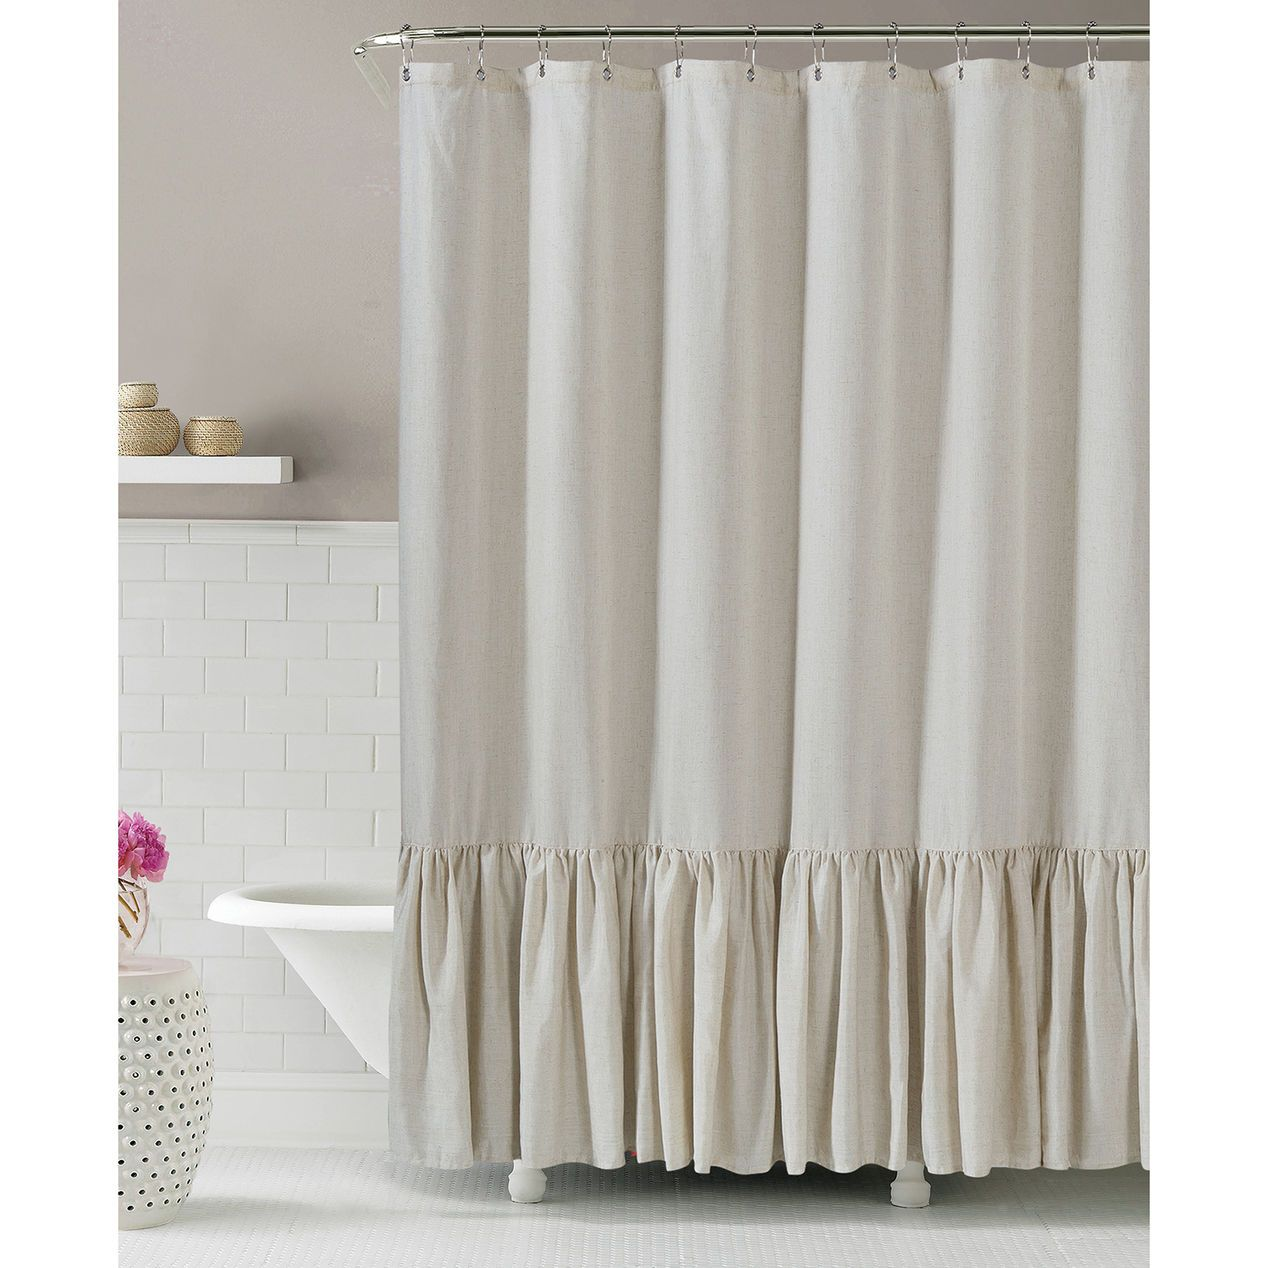 Gabriella Natural Linen Shower Curtain Ruffle Shower Curtains